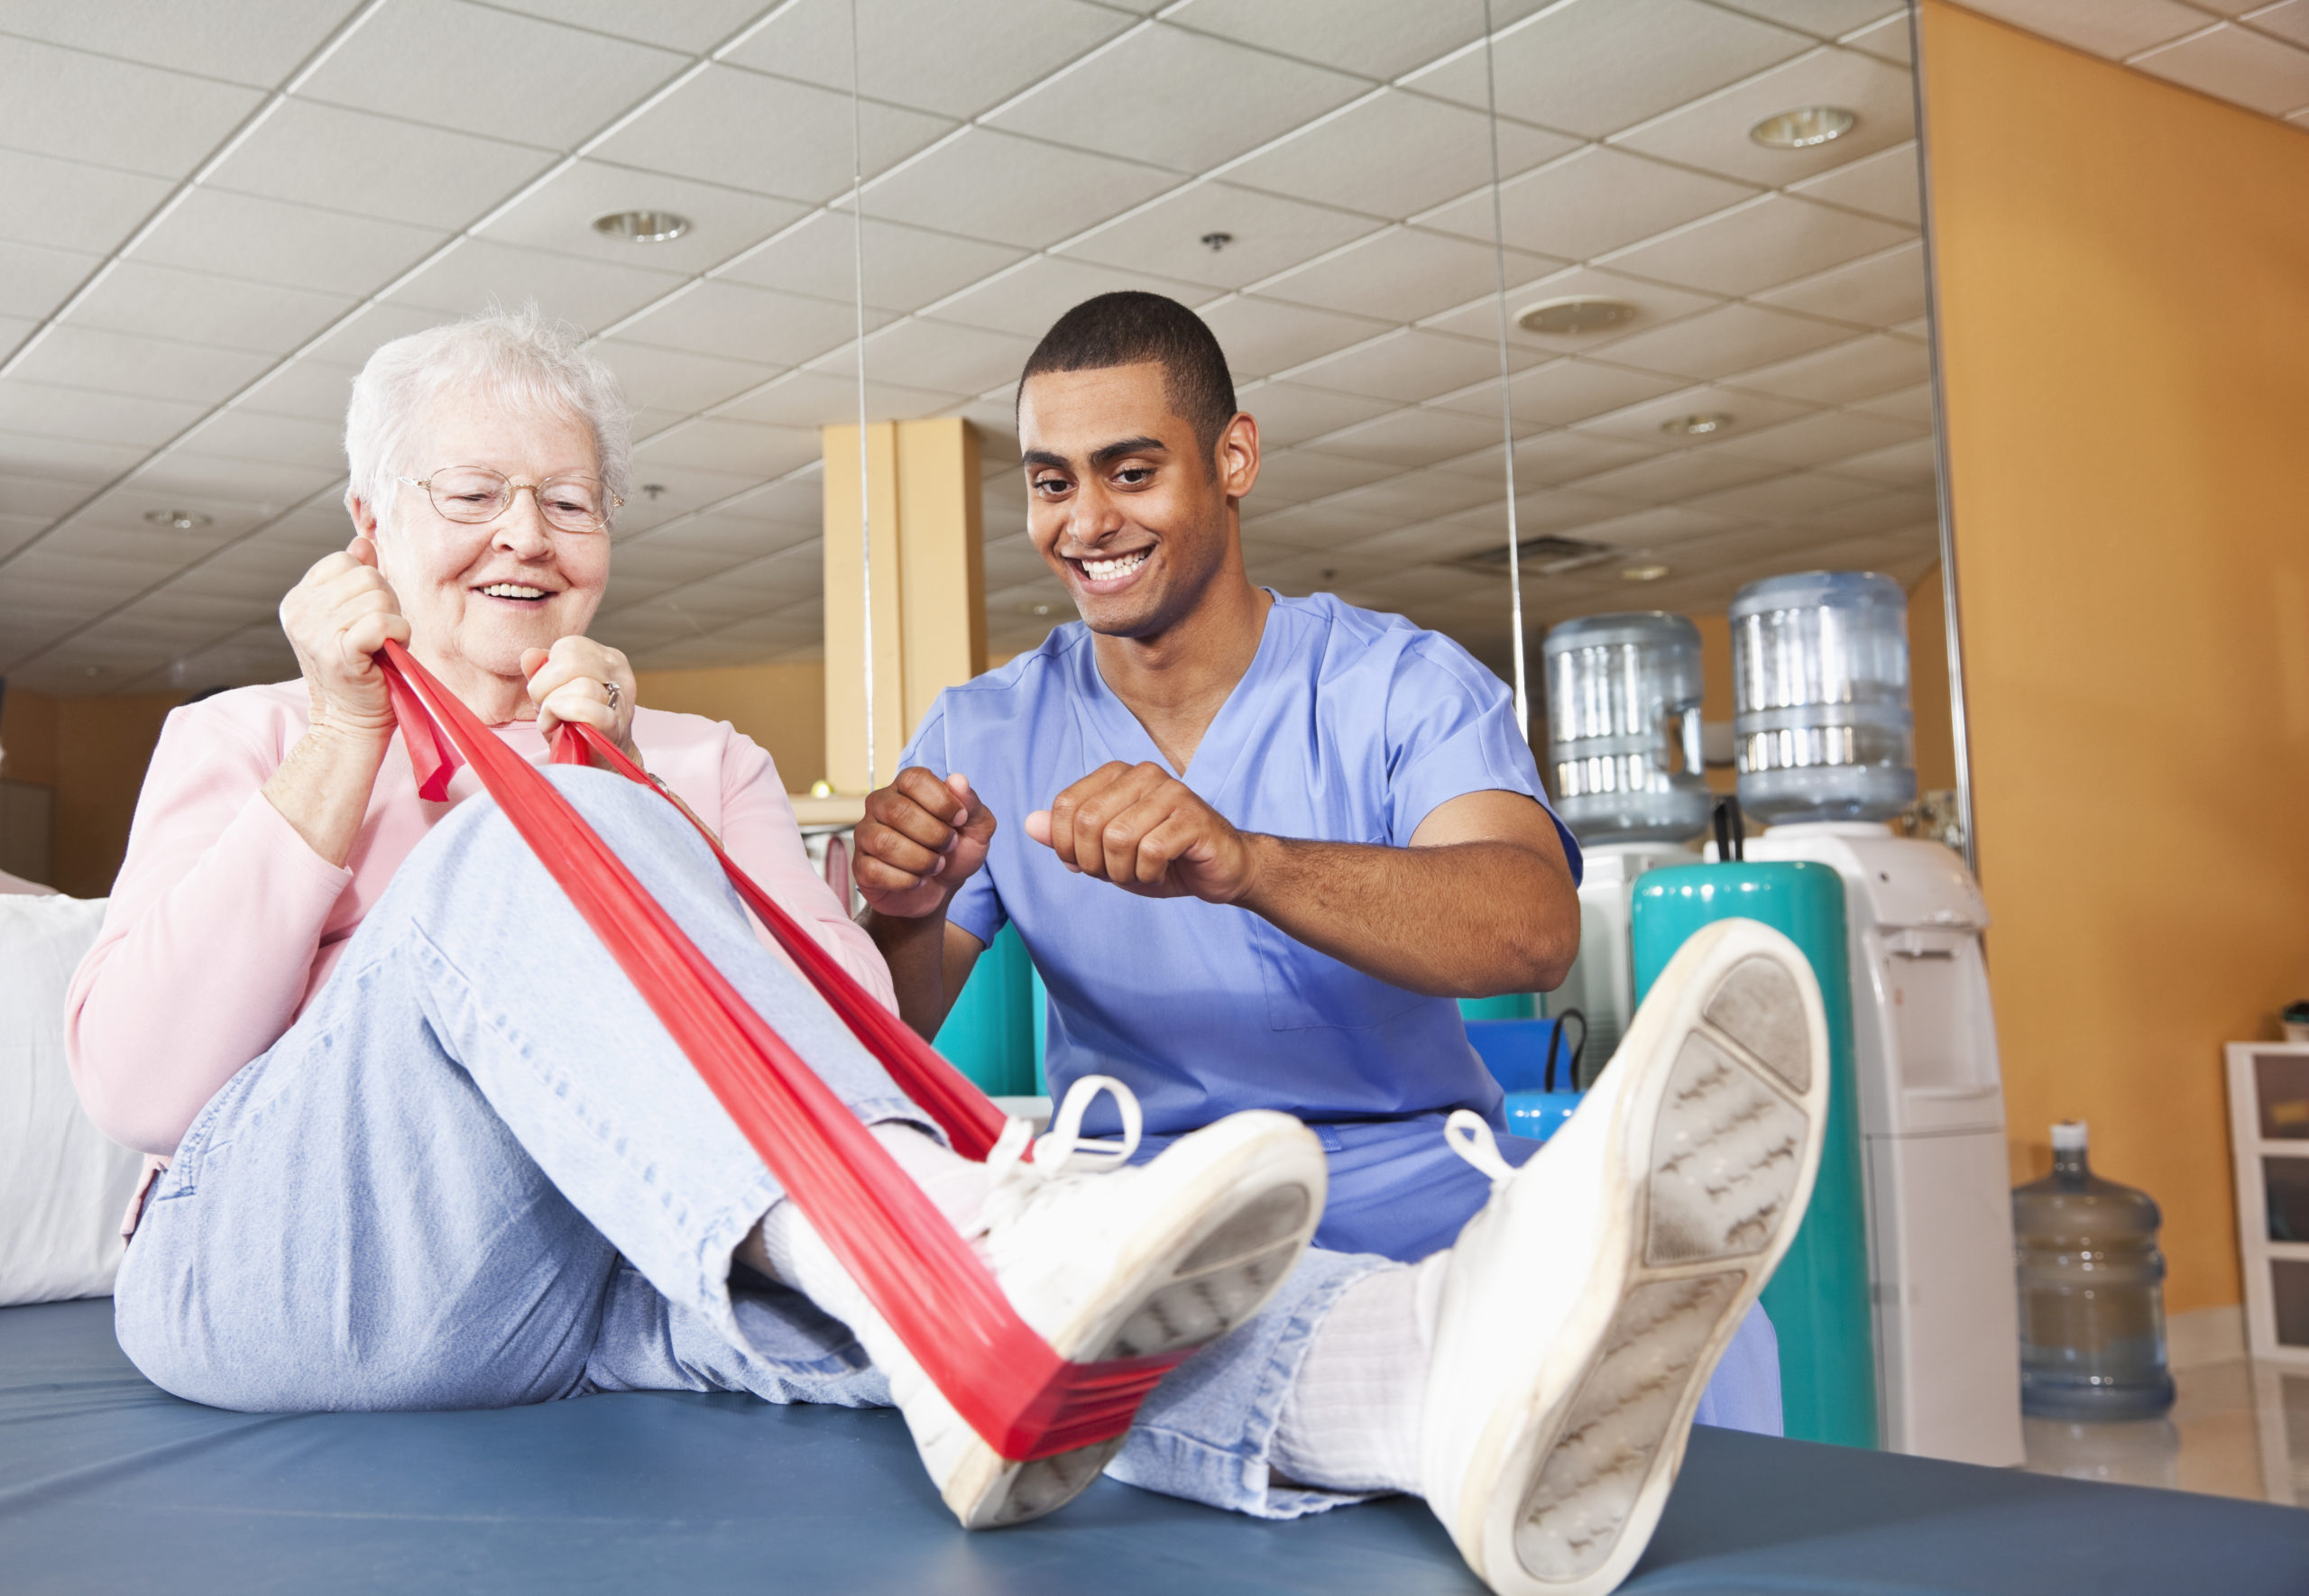 Physical therapist helping senior woman (80s) with leg exercises.